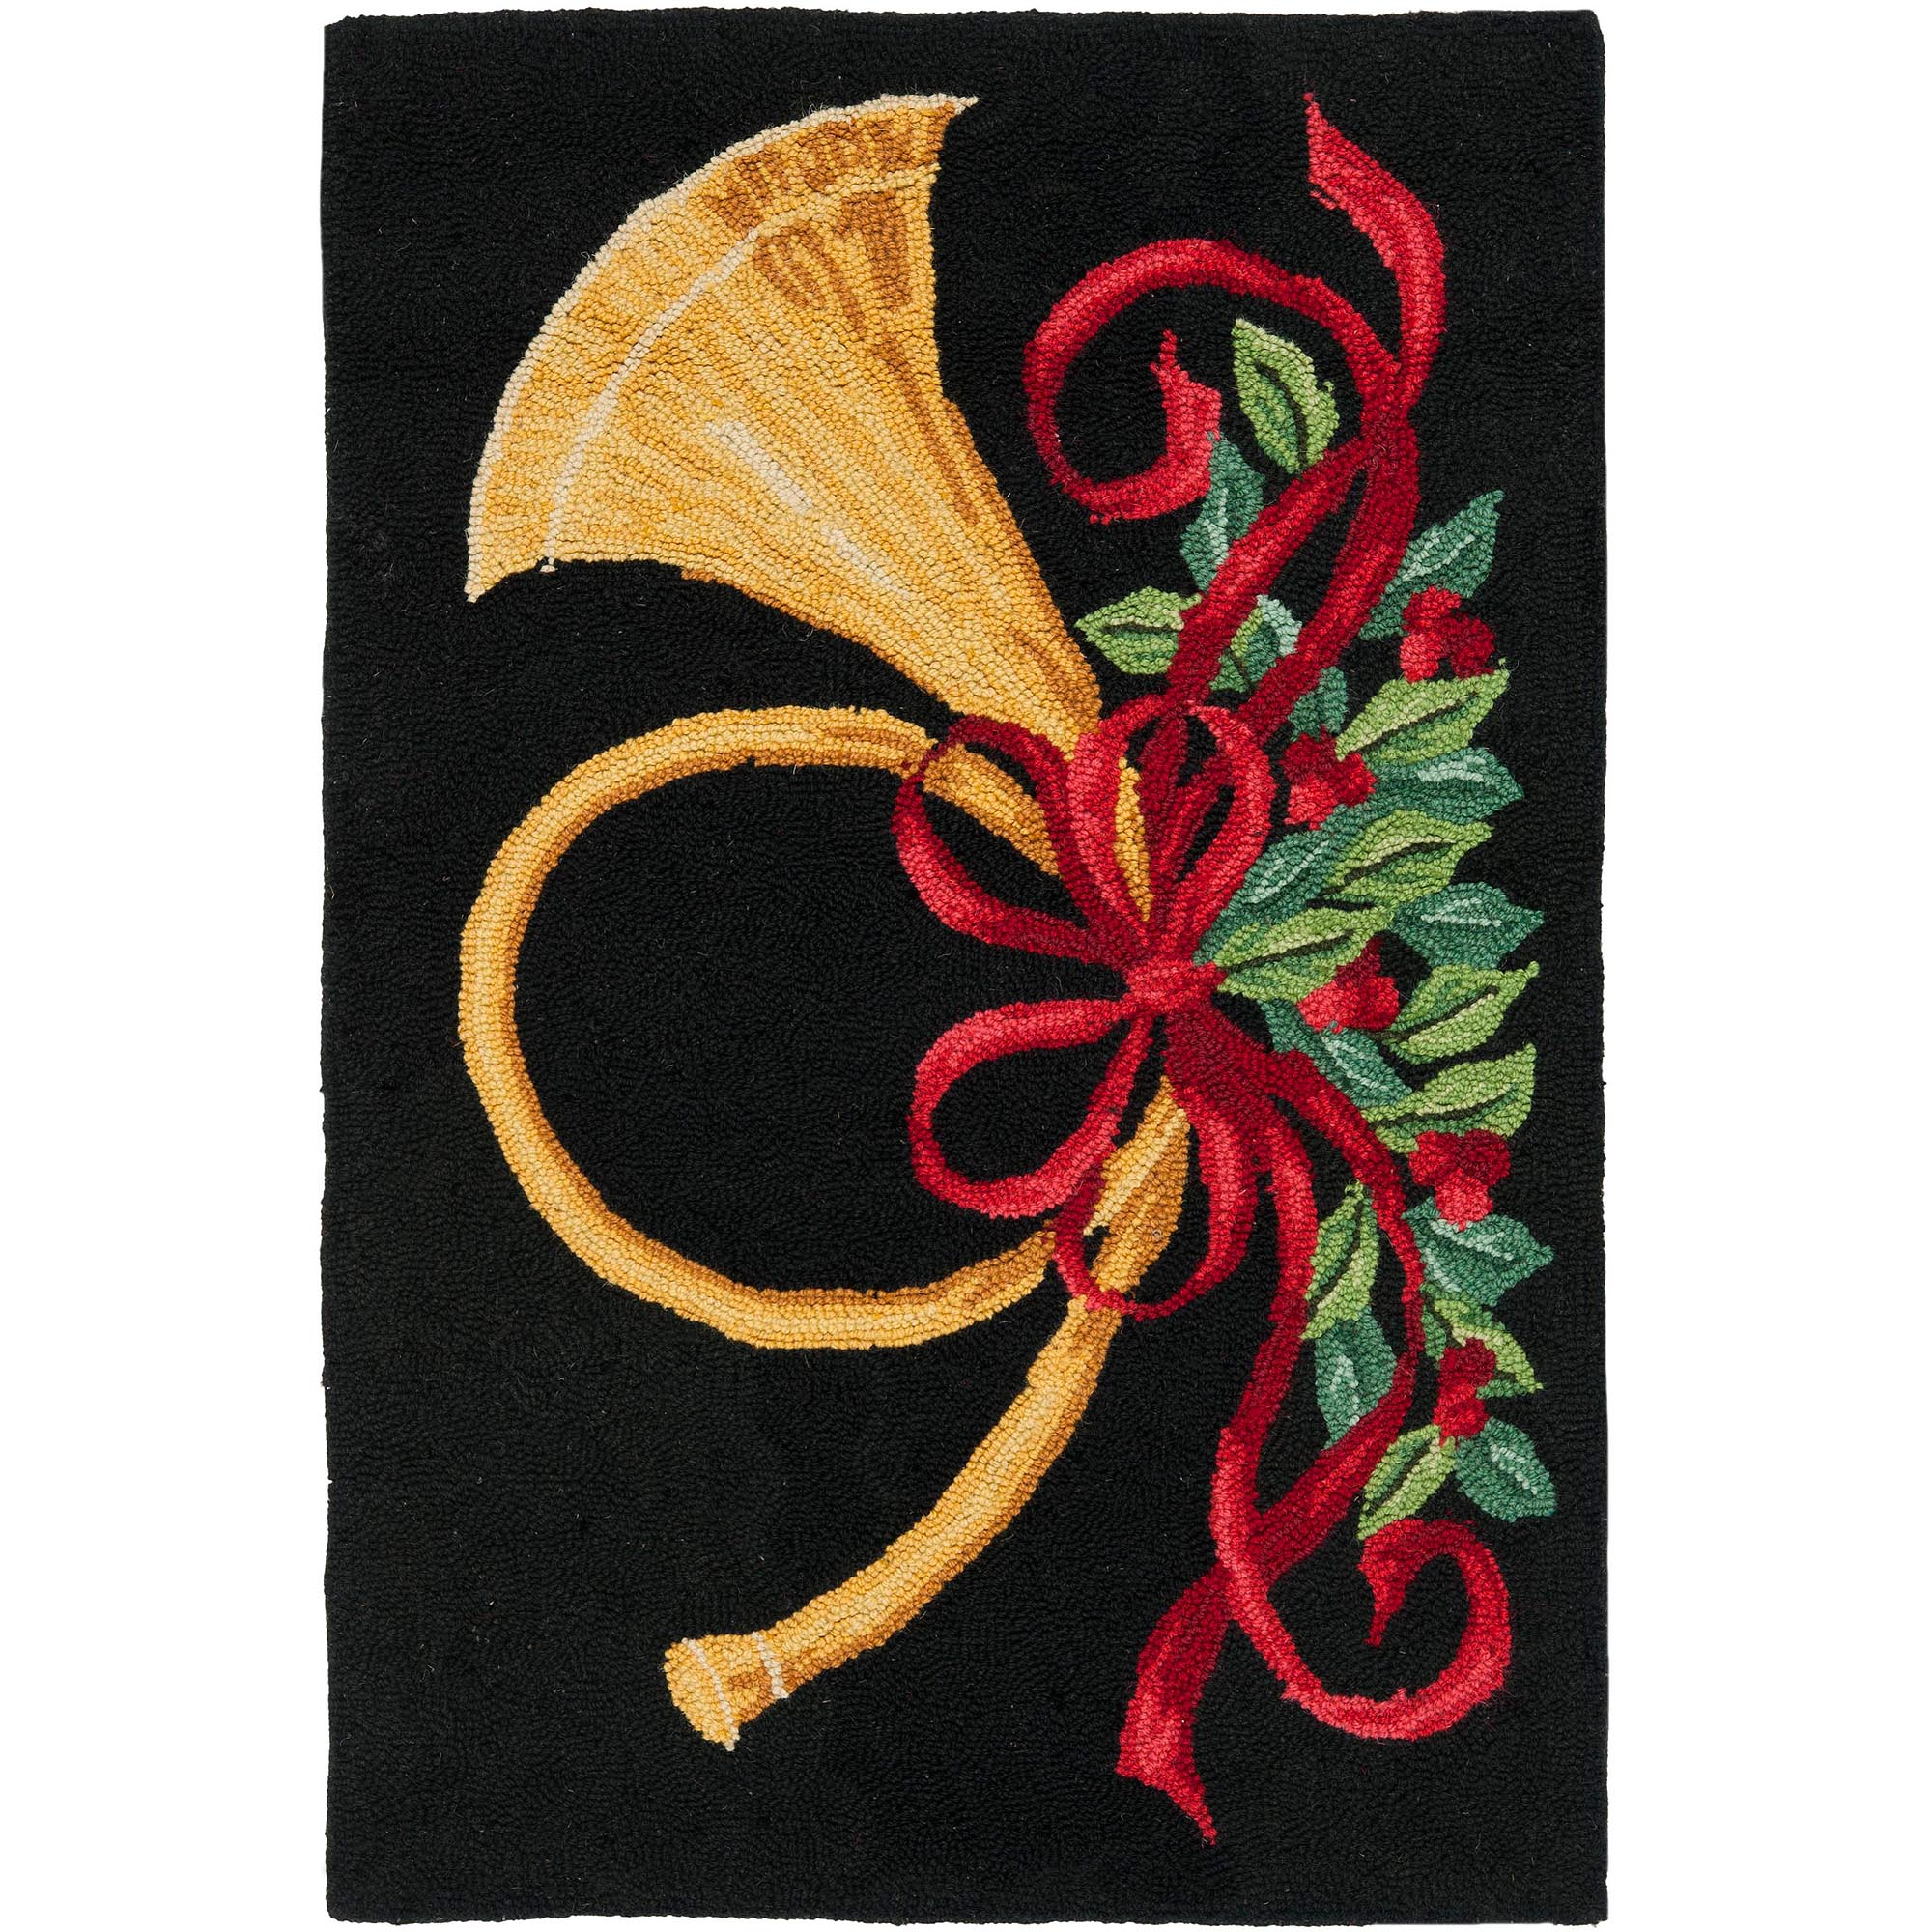 Safavieh Vintage Poster Ember Hand Hooked Wool Area Rug, Black and Multi-Colored